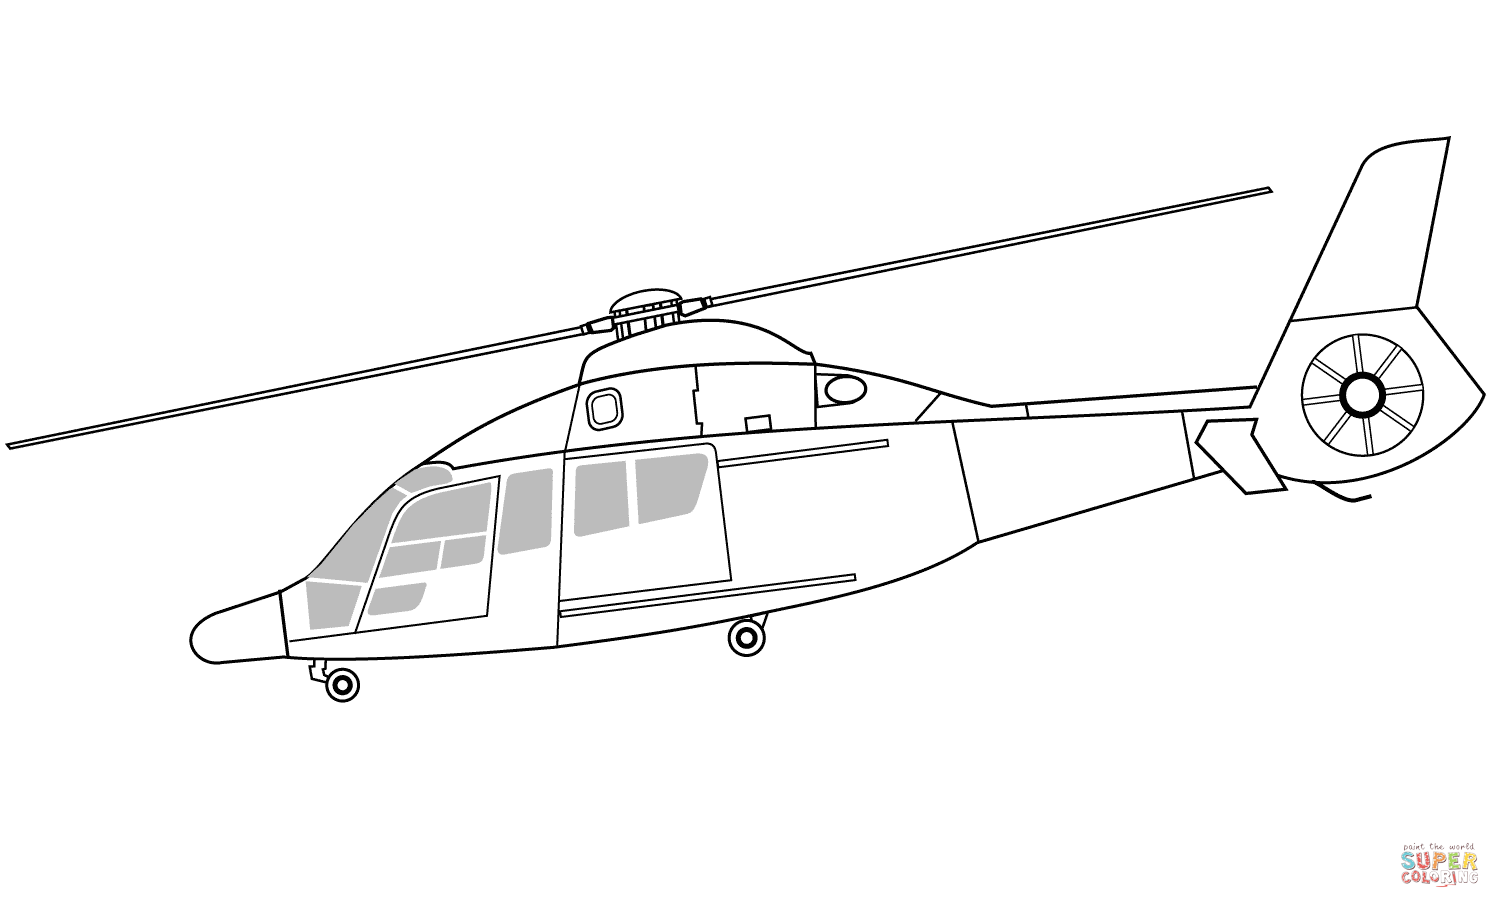 Kleurplaten Politiehelikopter.Police Helicopter Coloring Pages Coloring Home